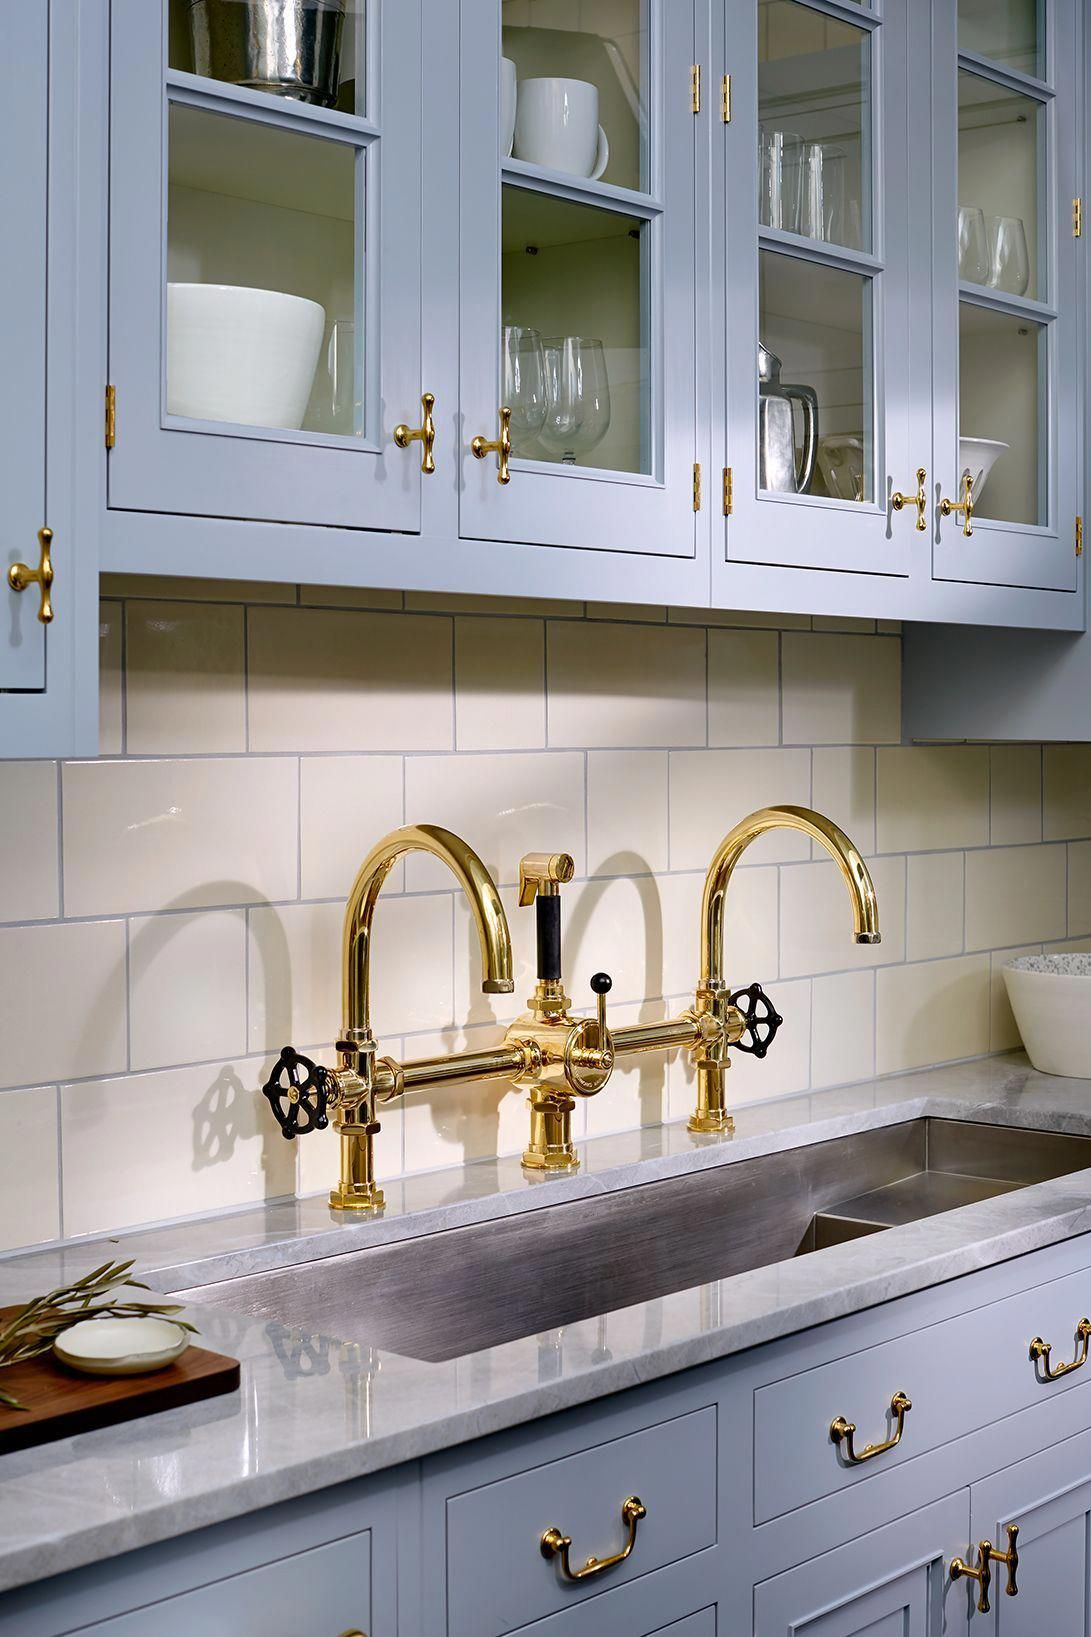 Kitchen And Bath Remodeling Companies Near Me Kitchendesigns